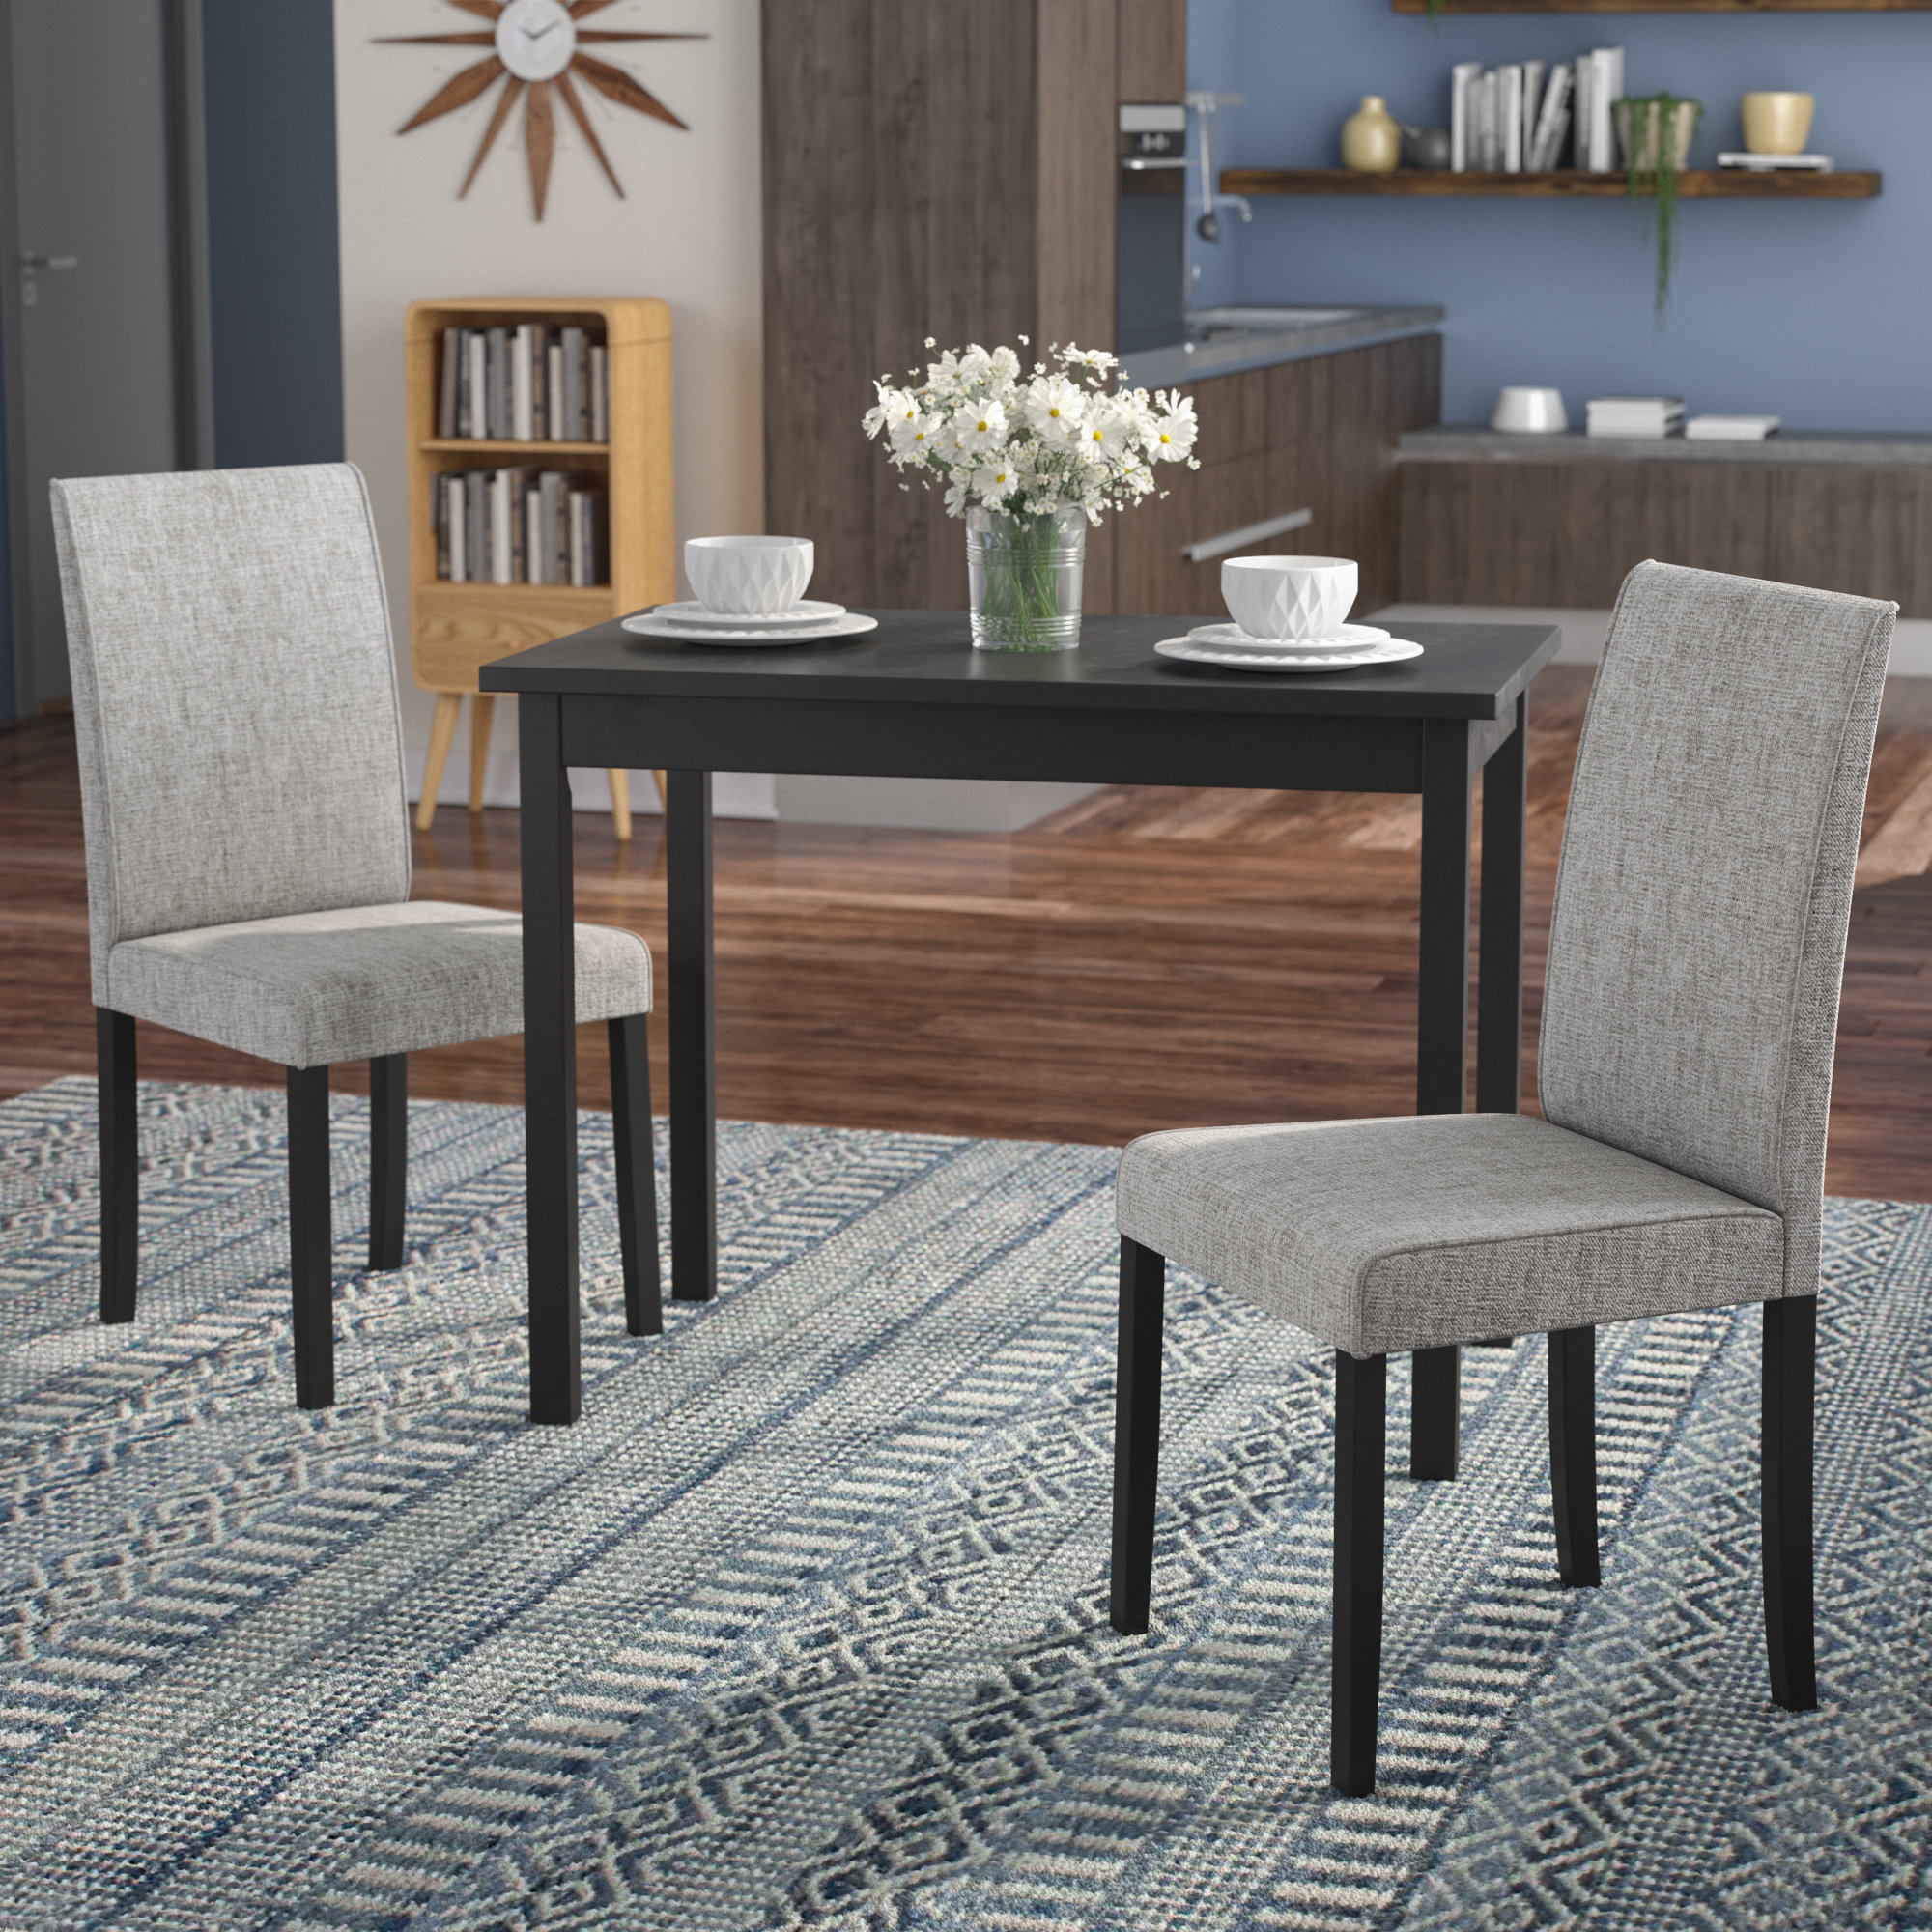 Darvell 3 Piece Dining Set Pertaining To Newest Baillie 3 Piece Dining Sets (View 2 of 20)